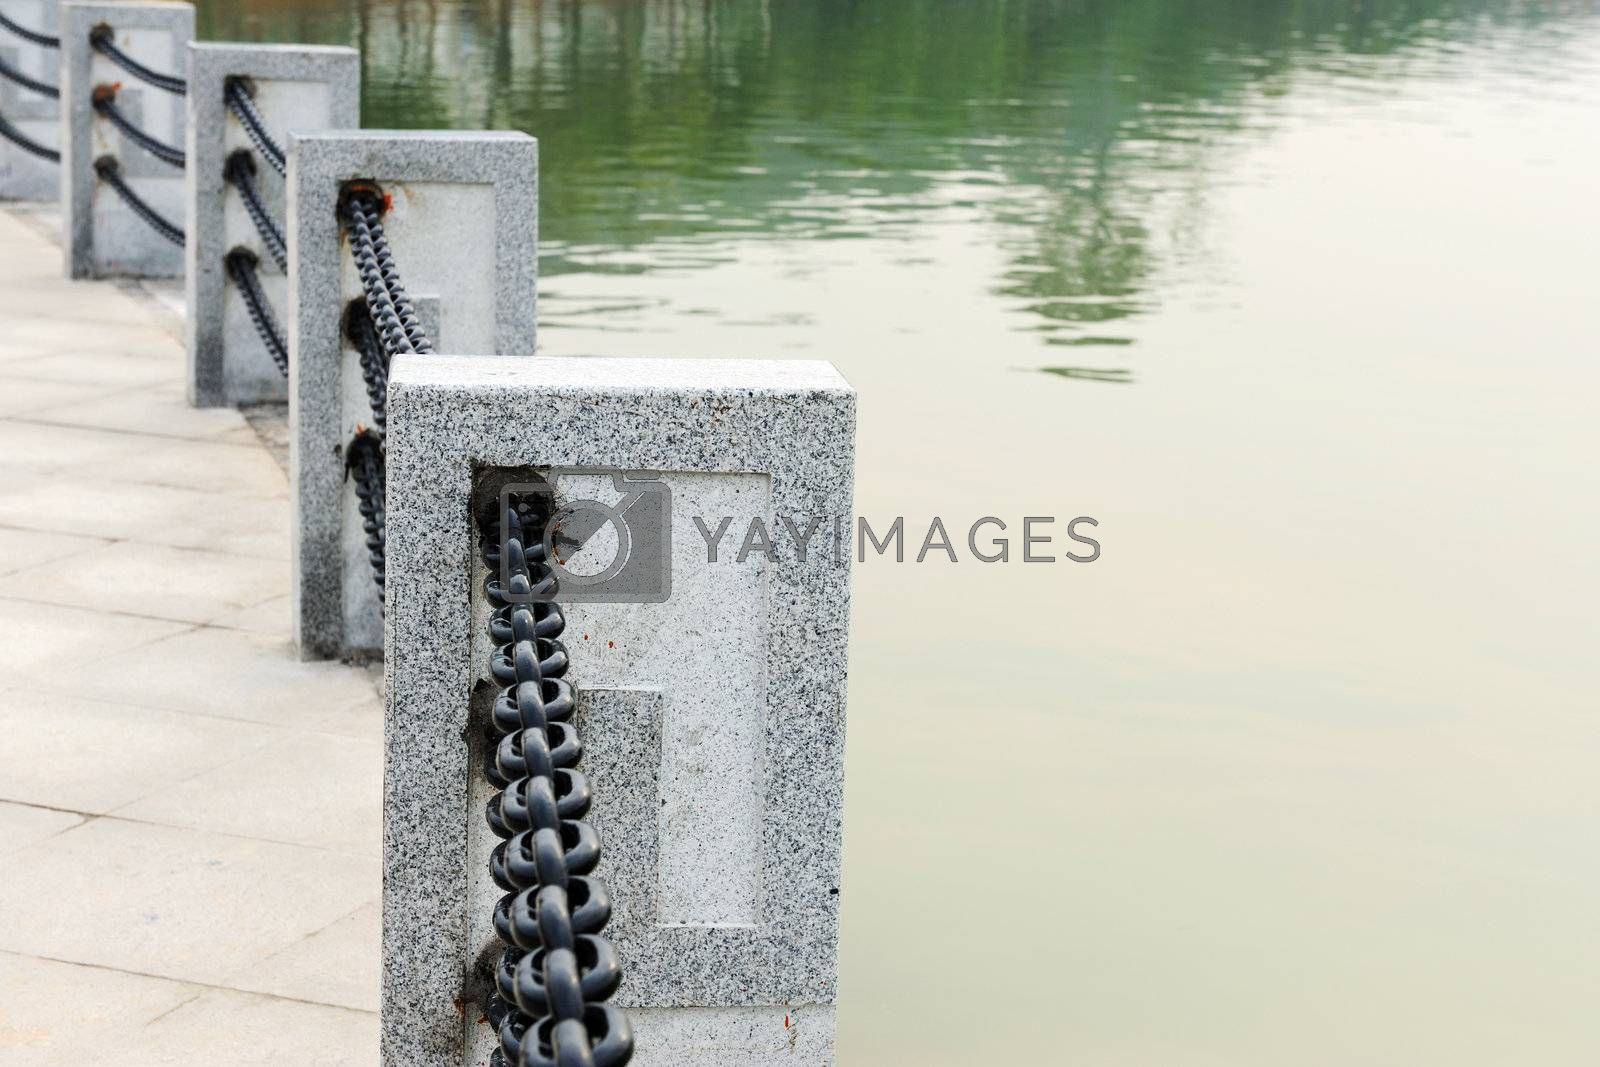 Handrail by the lake made of stone and iron trail